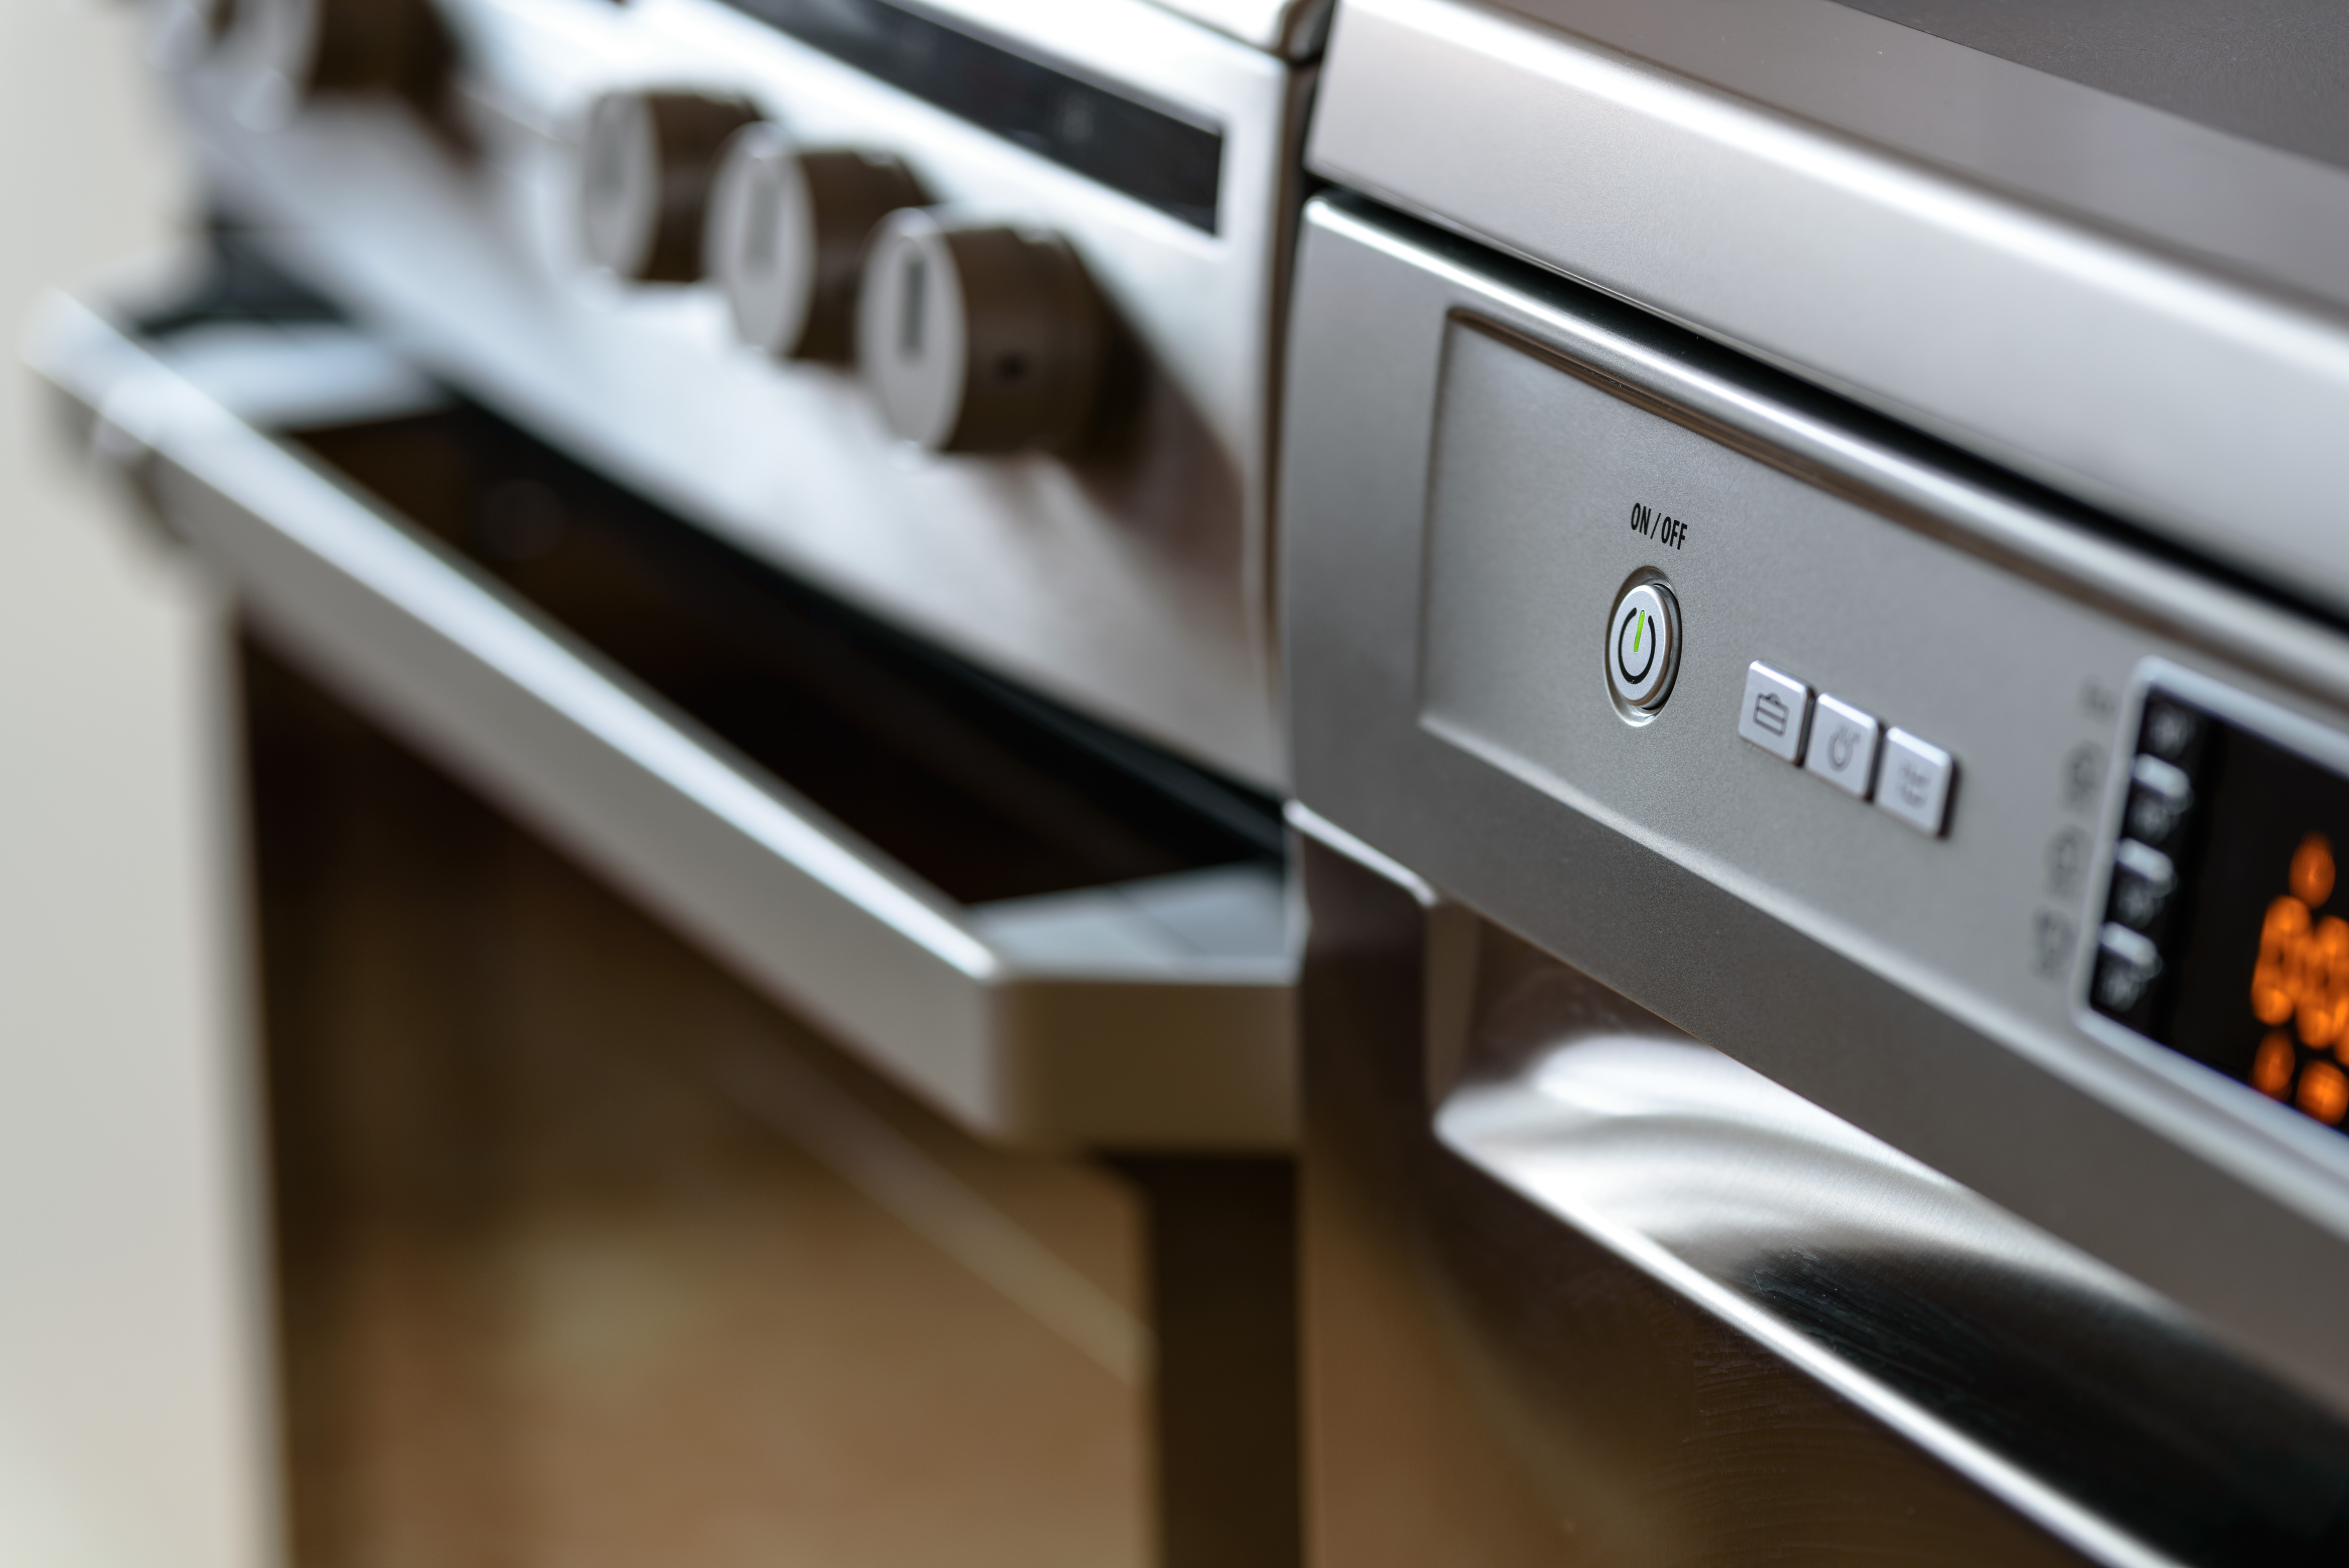 Home Network Security Appliance Connected Dishwasher Has Security Smudge That Doesnt Come Off